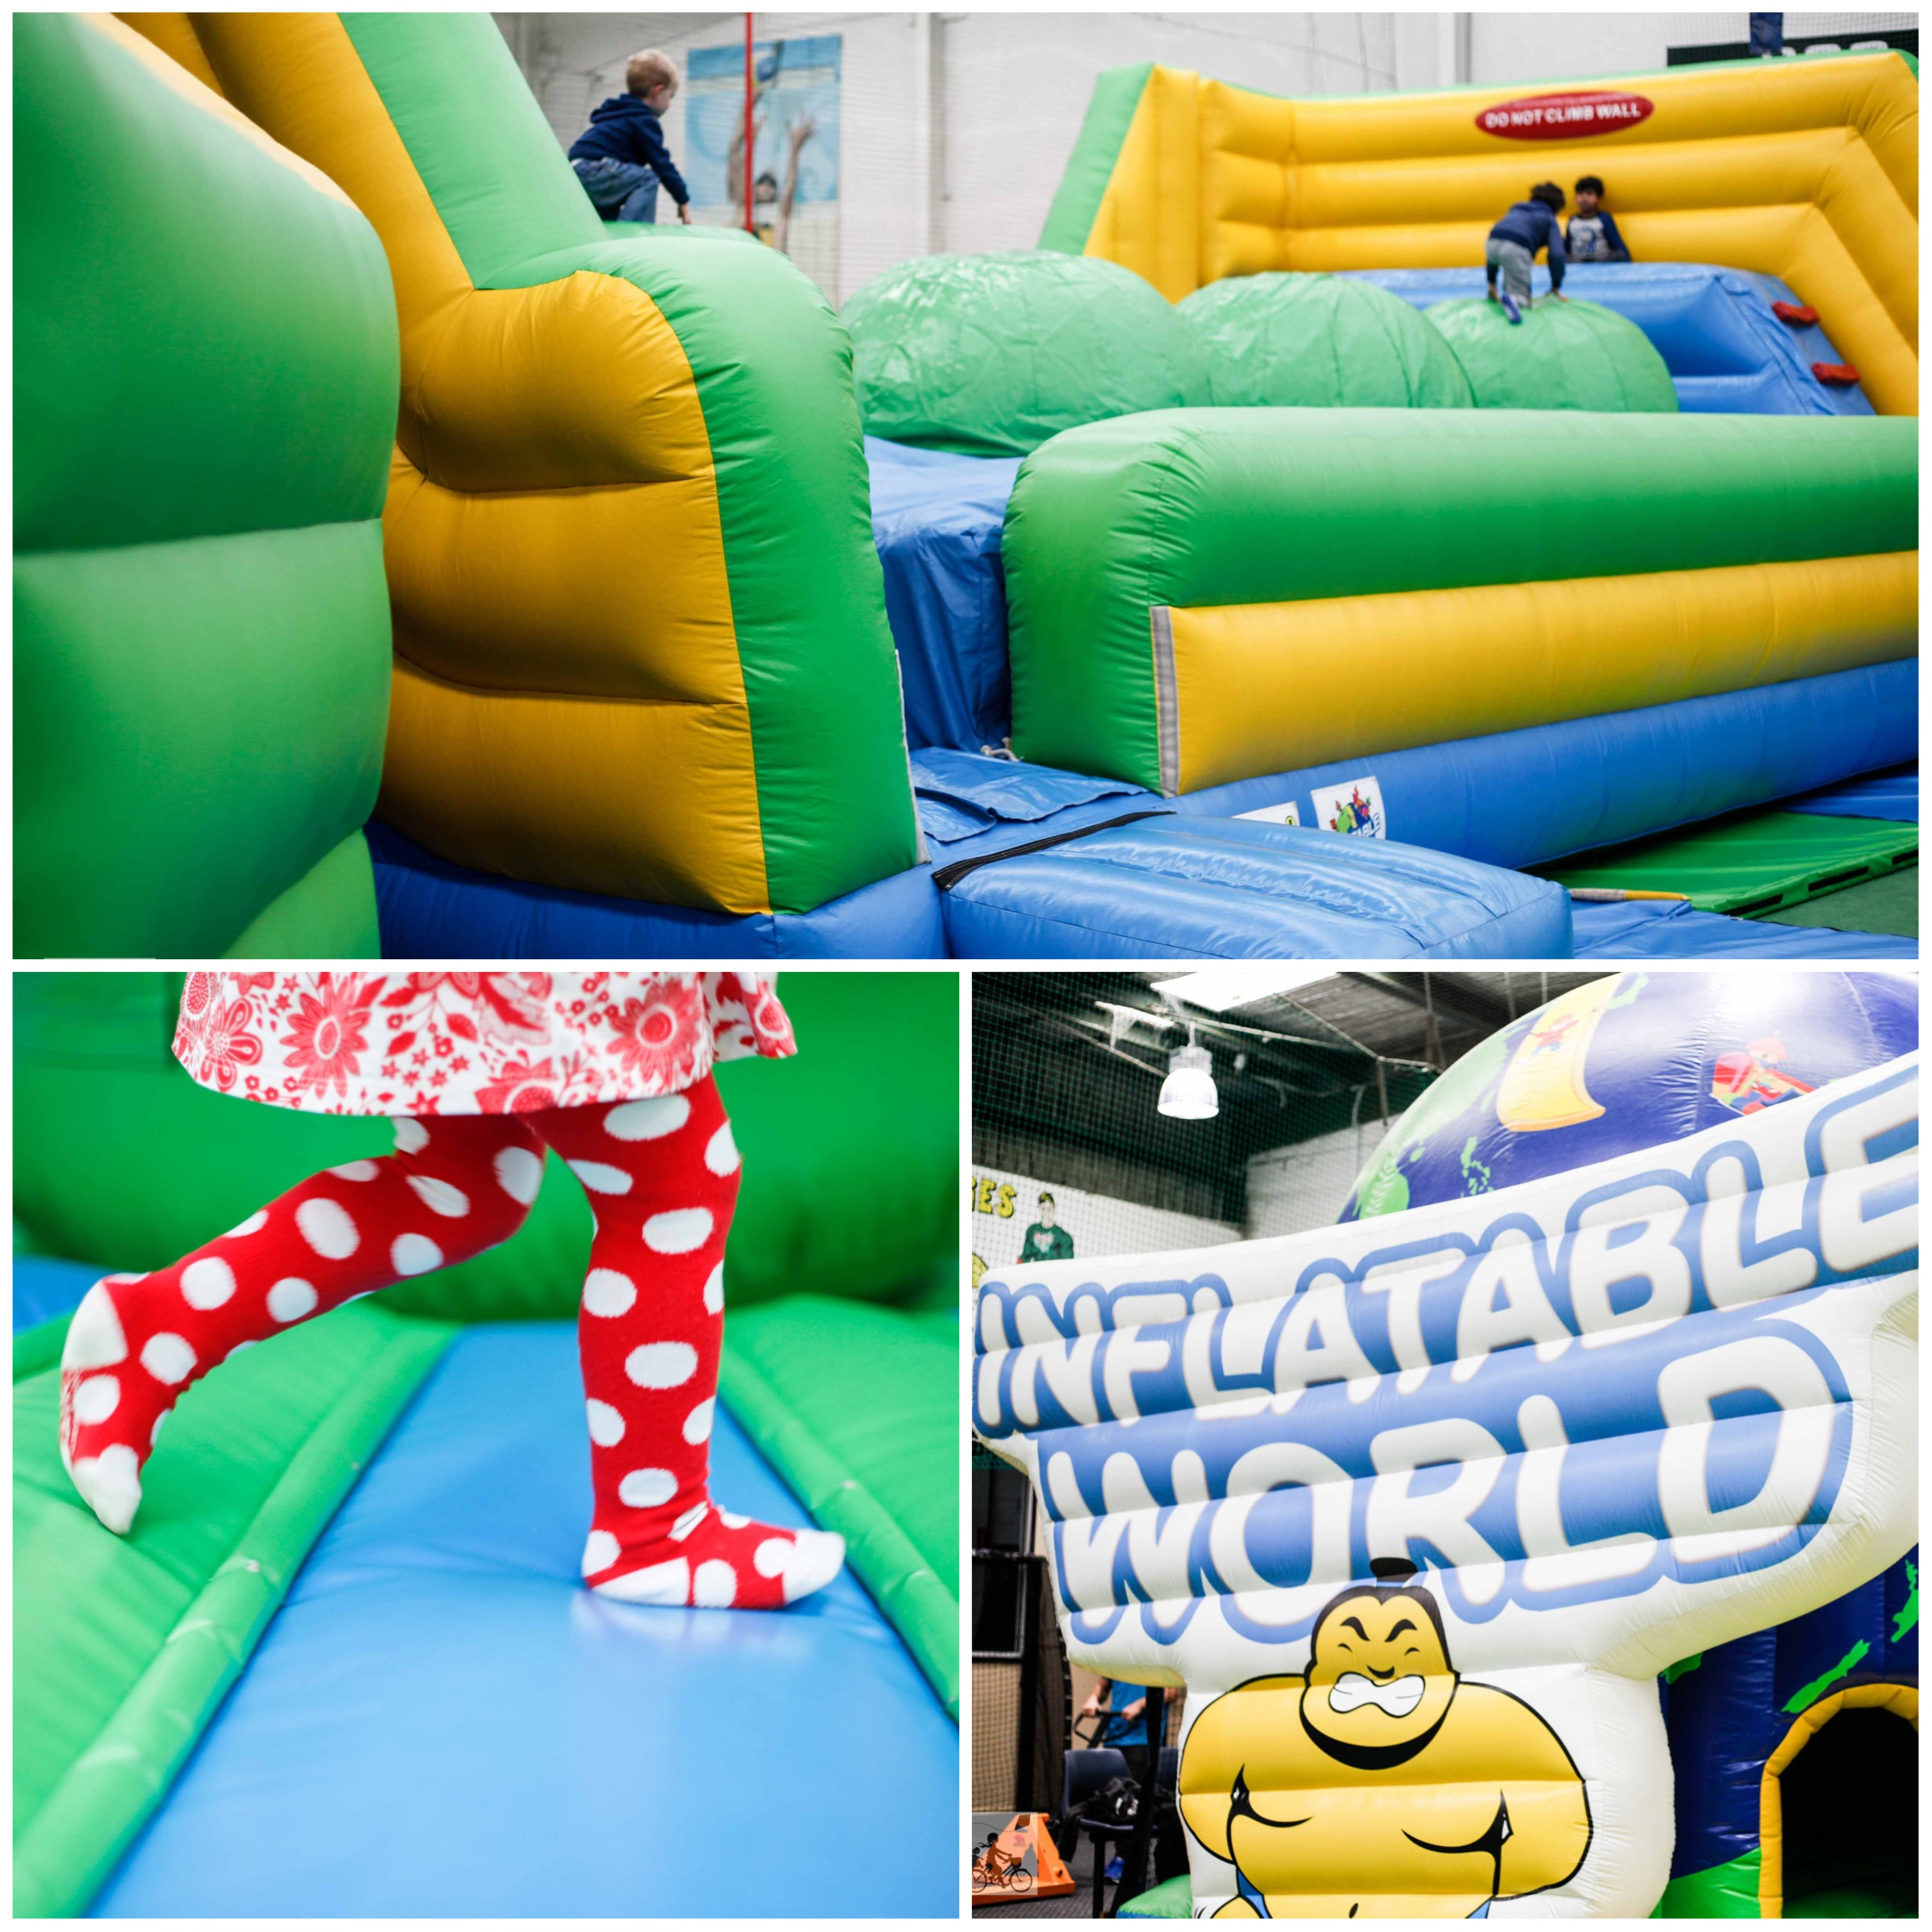 Mamma Knows East - Inflatable World